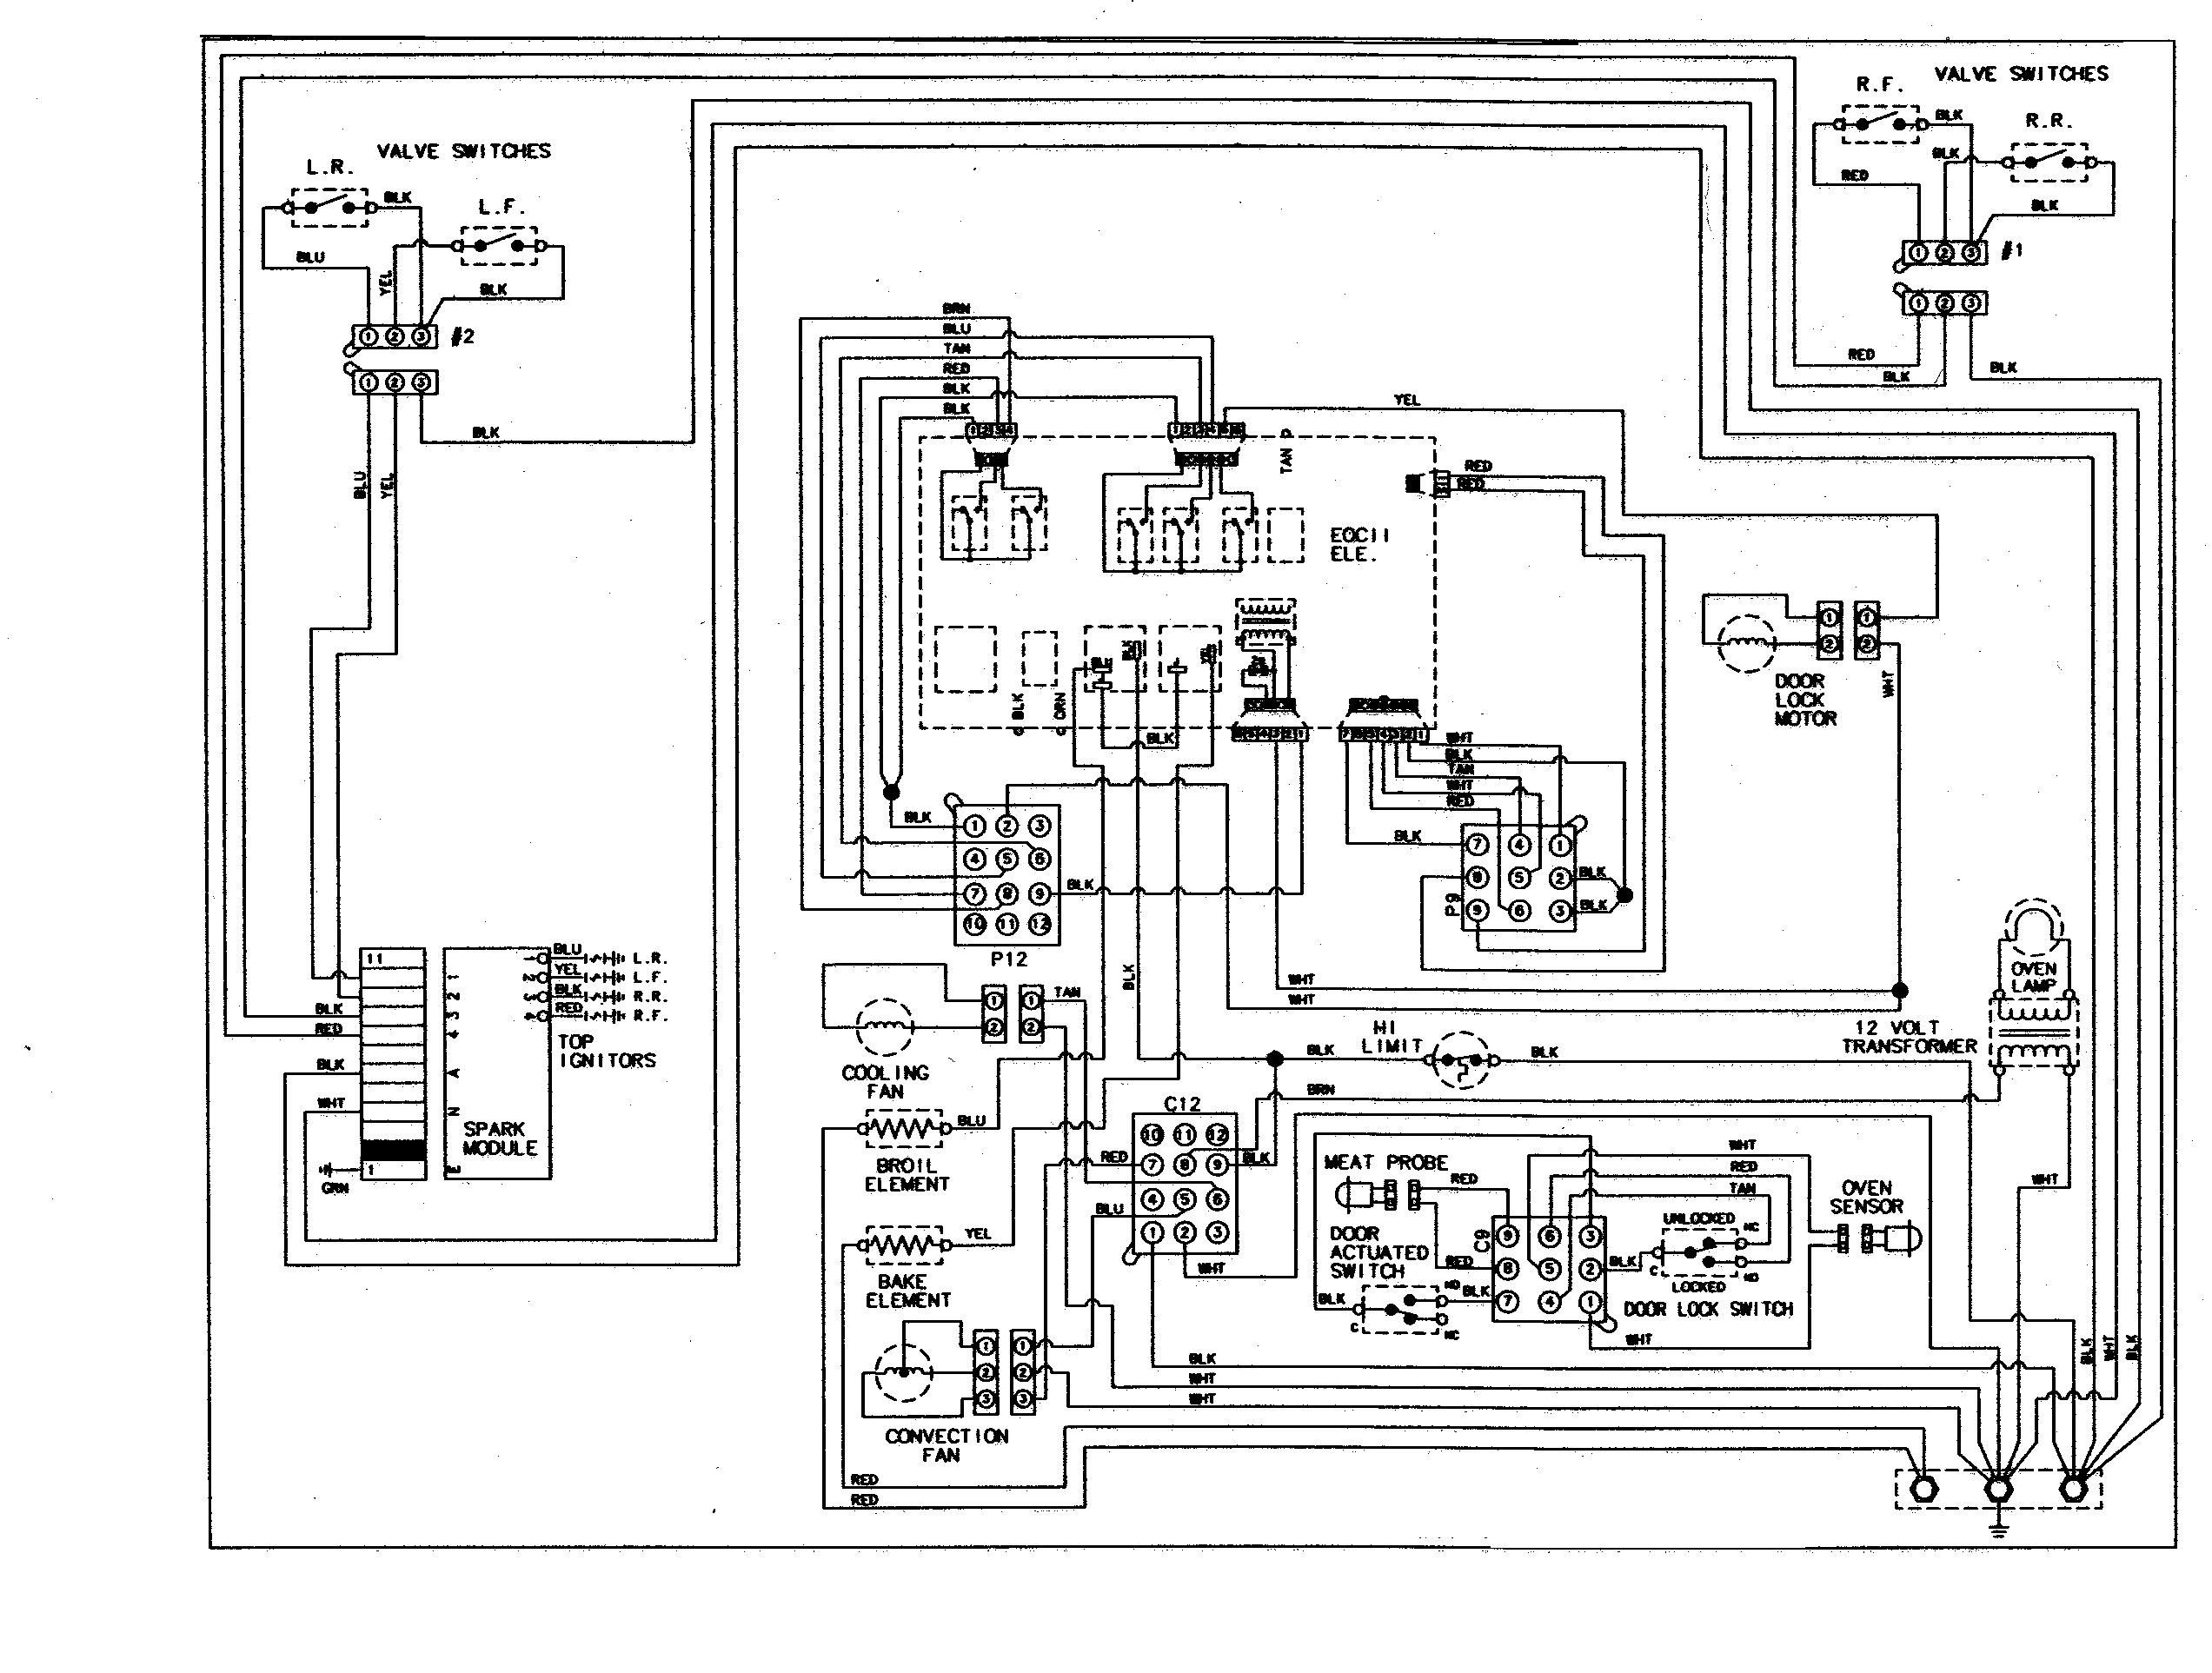 Wash Machine Motor Wiring Schematic Manual Of Diagram Whirlpool Washing Kenmore Stove Get Free Image About